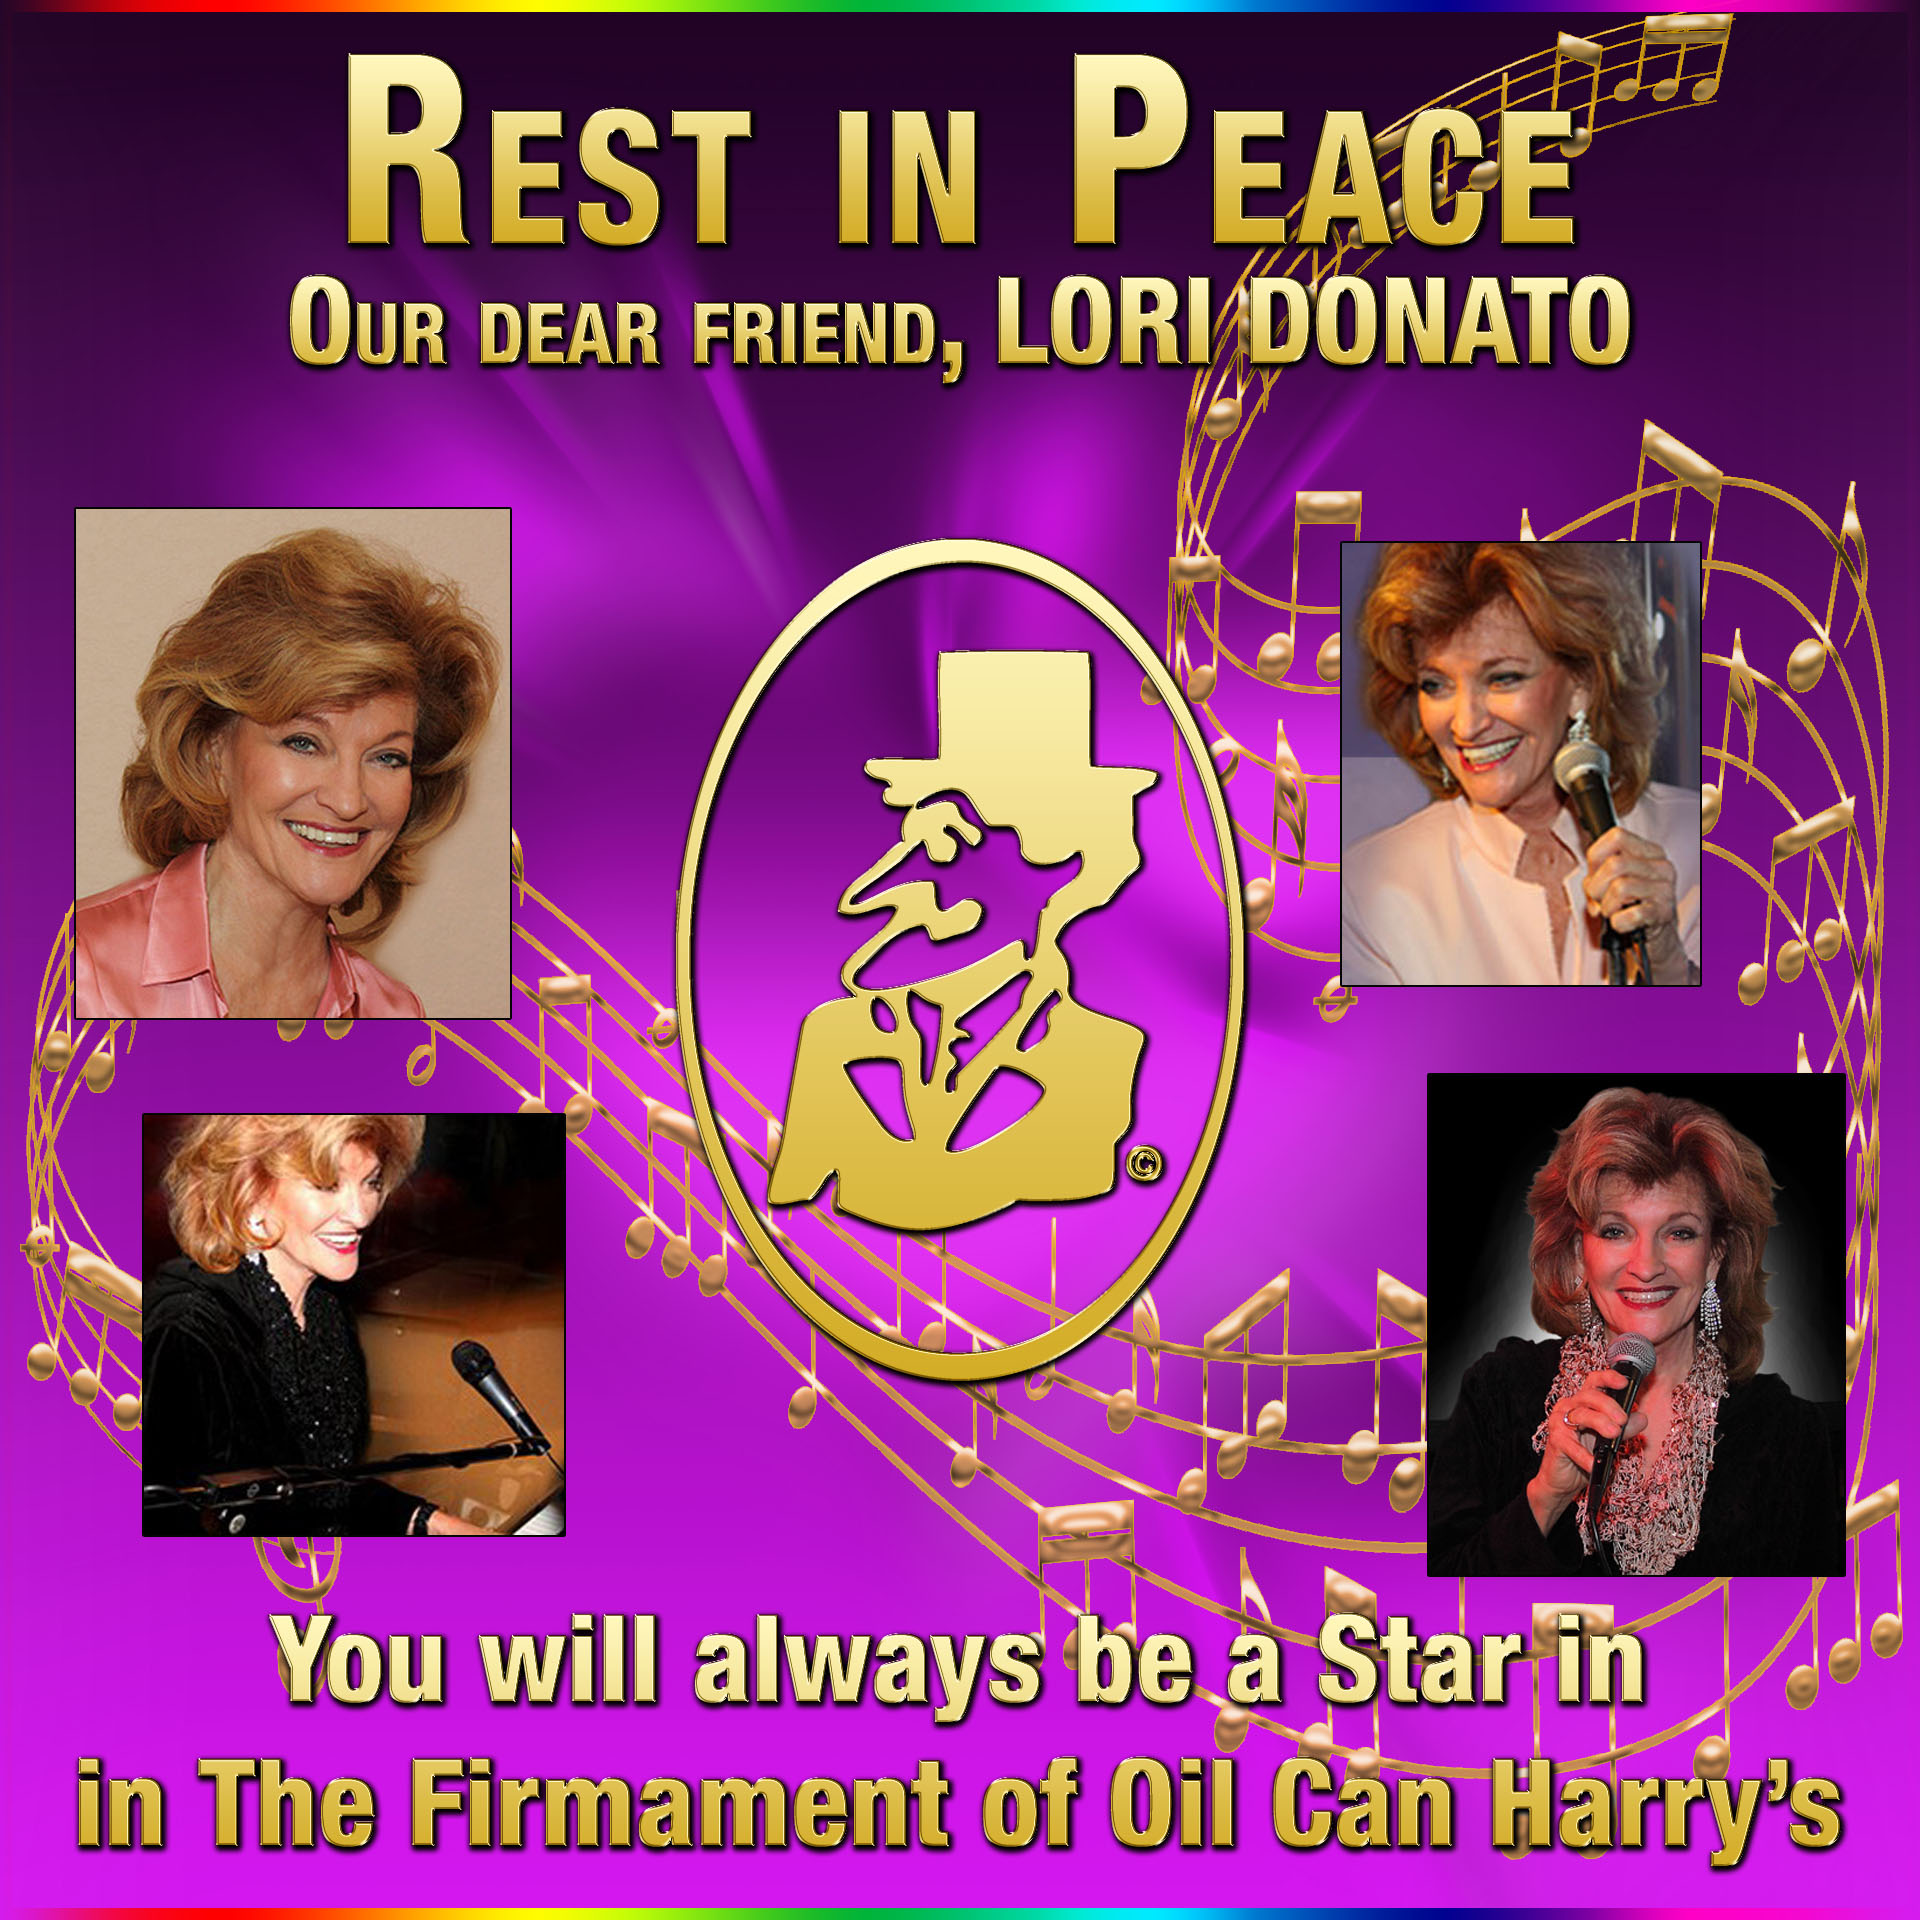 Rest in Peace our dear friend, Lori Donato. You will always be a star in The Firmament of Oil Can Harry's.